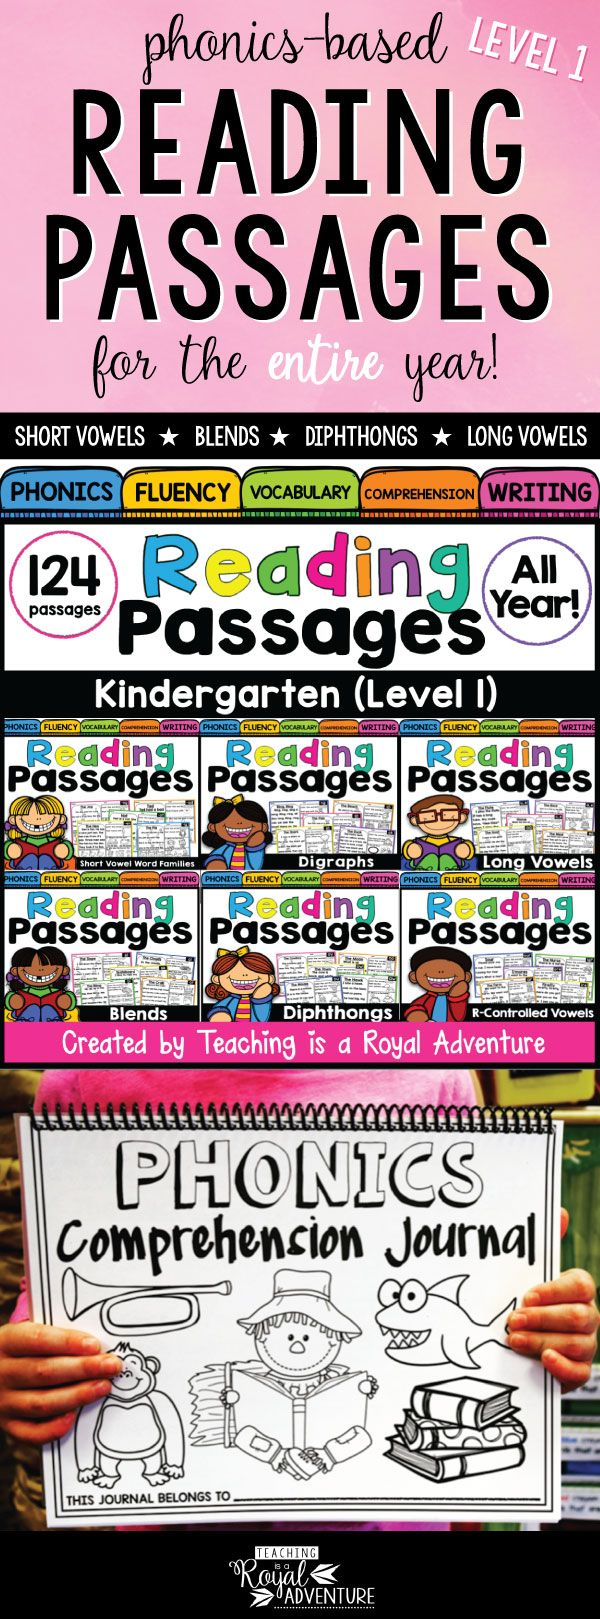 worksheet Leveled Reading Passages die besten 17 ideen zu leveled reading passages auf pinterest fluency and skill based comprehension level 1 all year